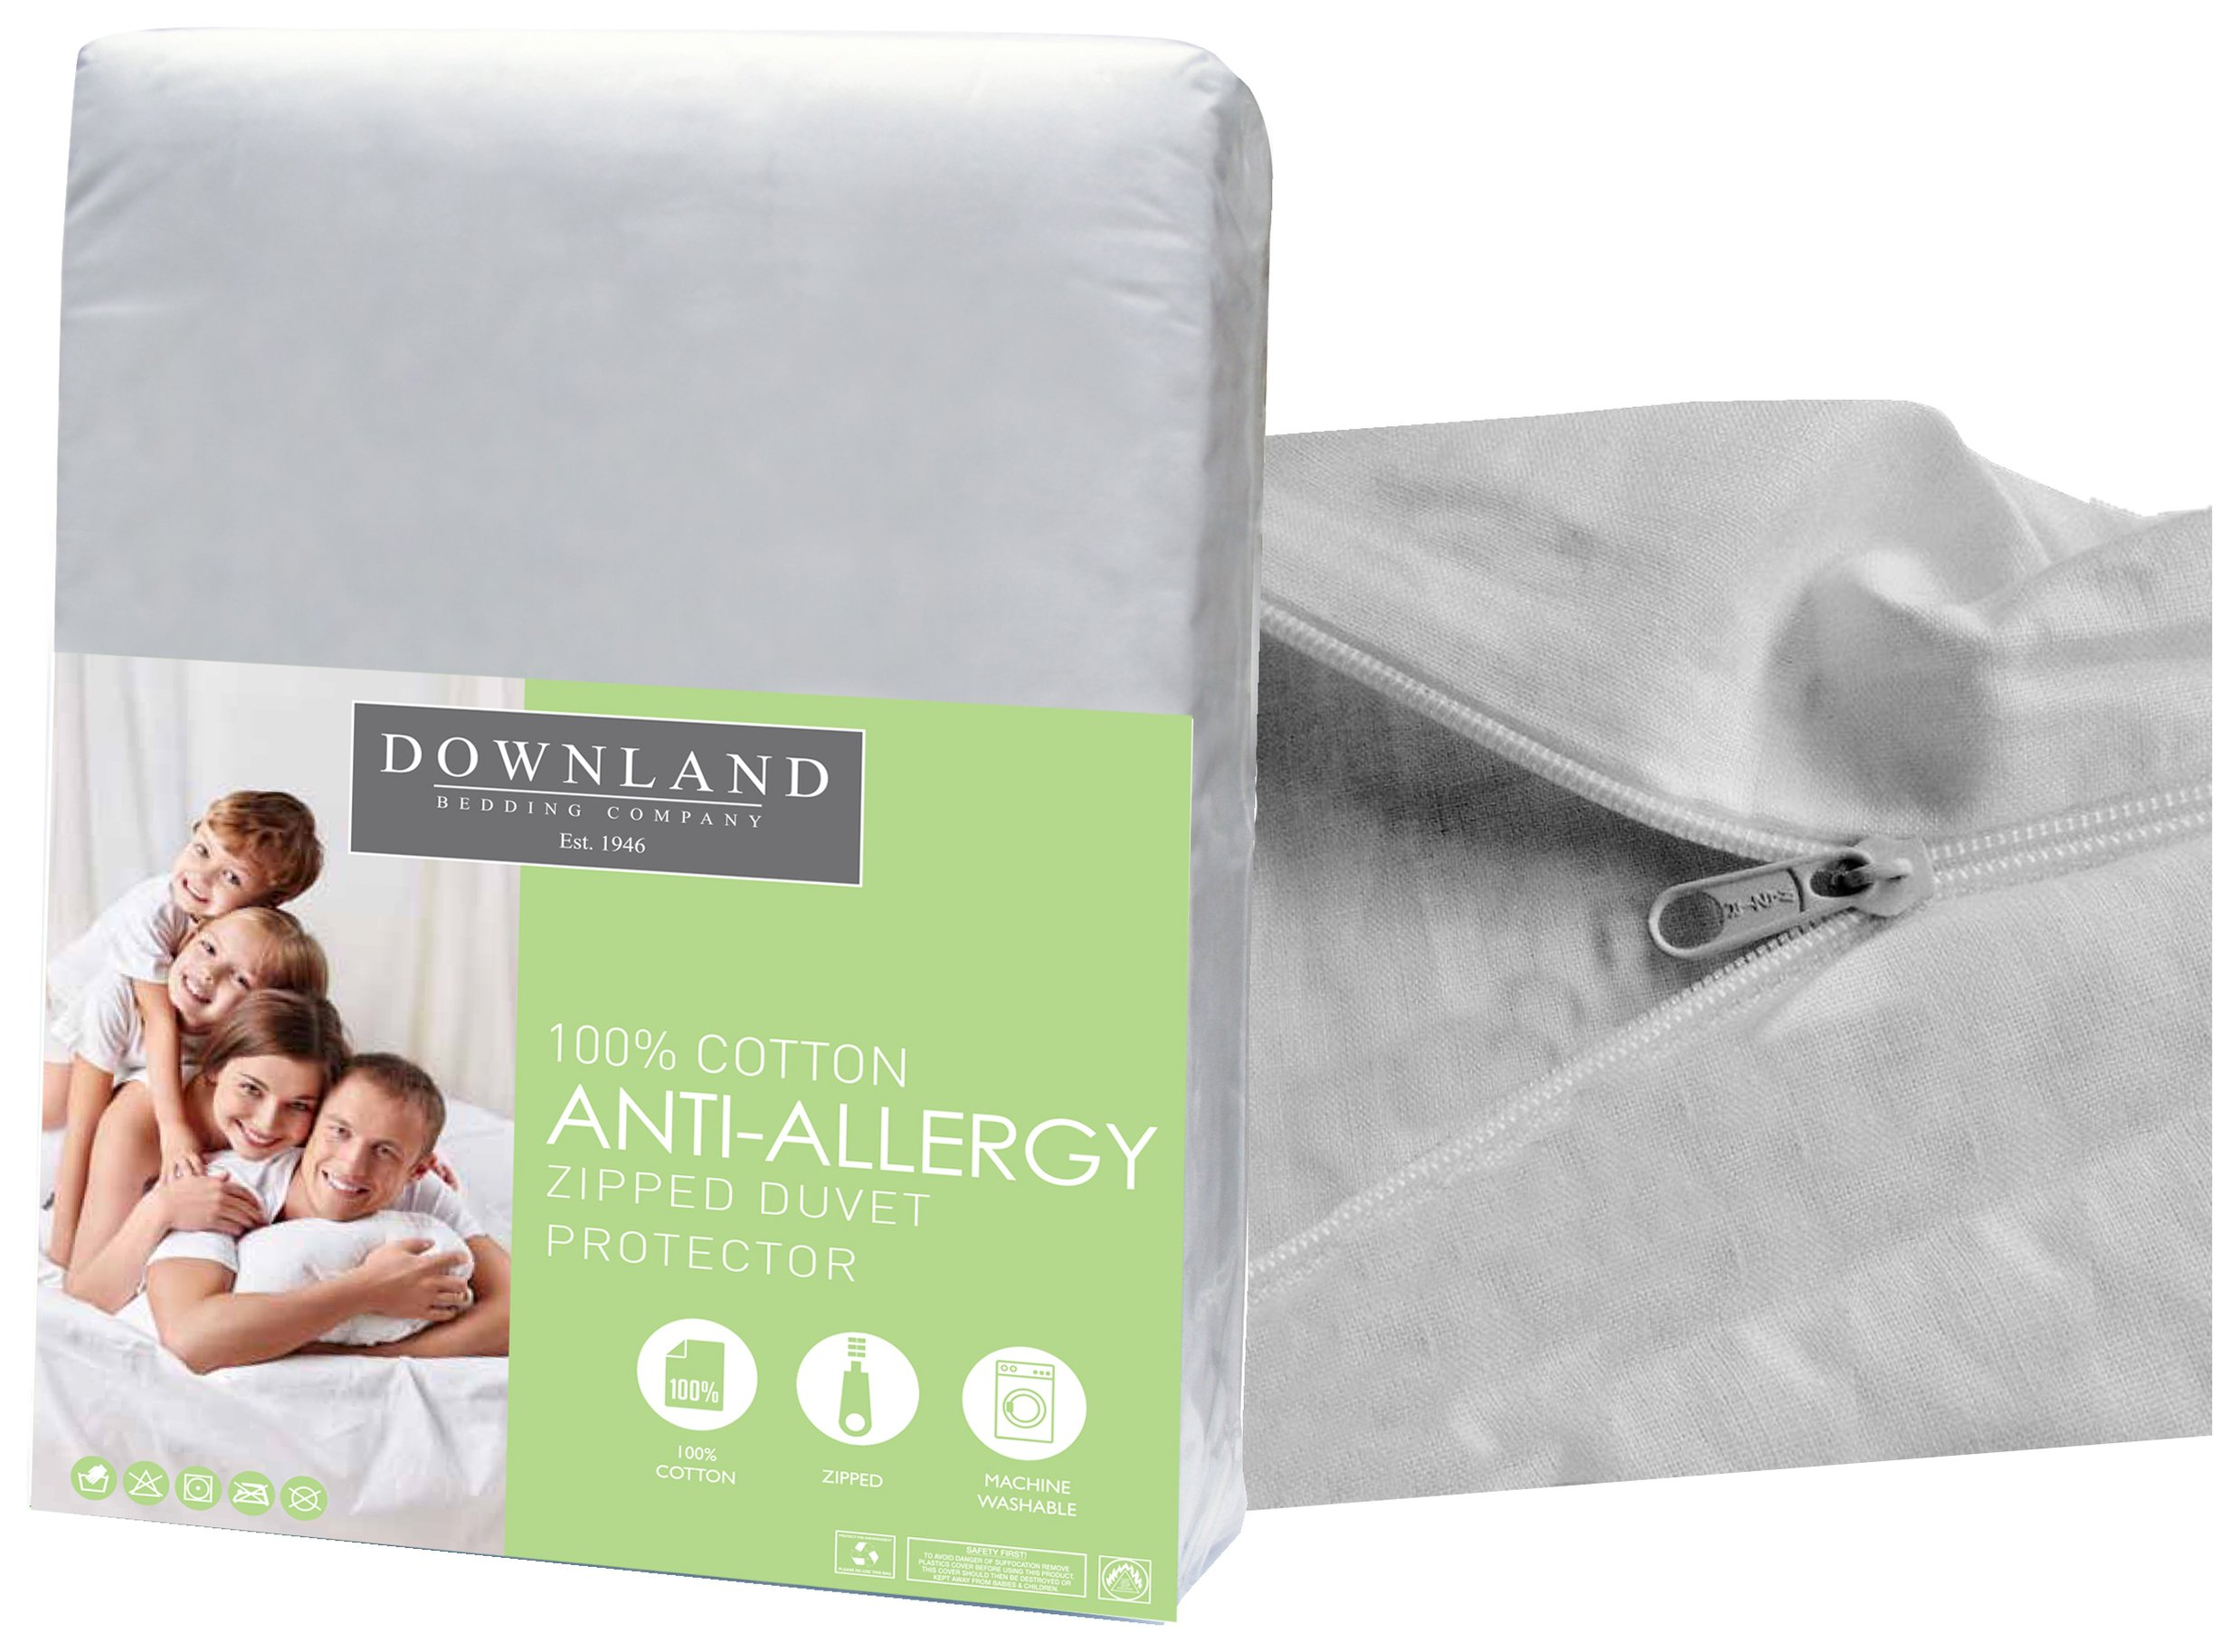 downland zipped anti allergy duvet protector  single